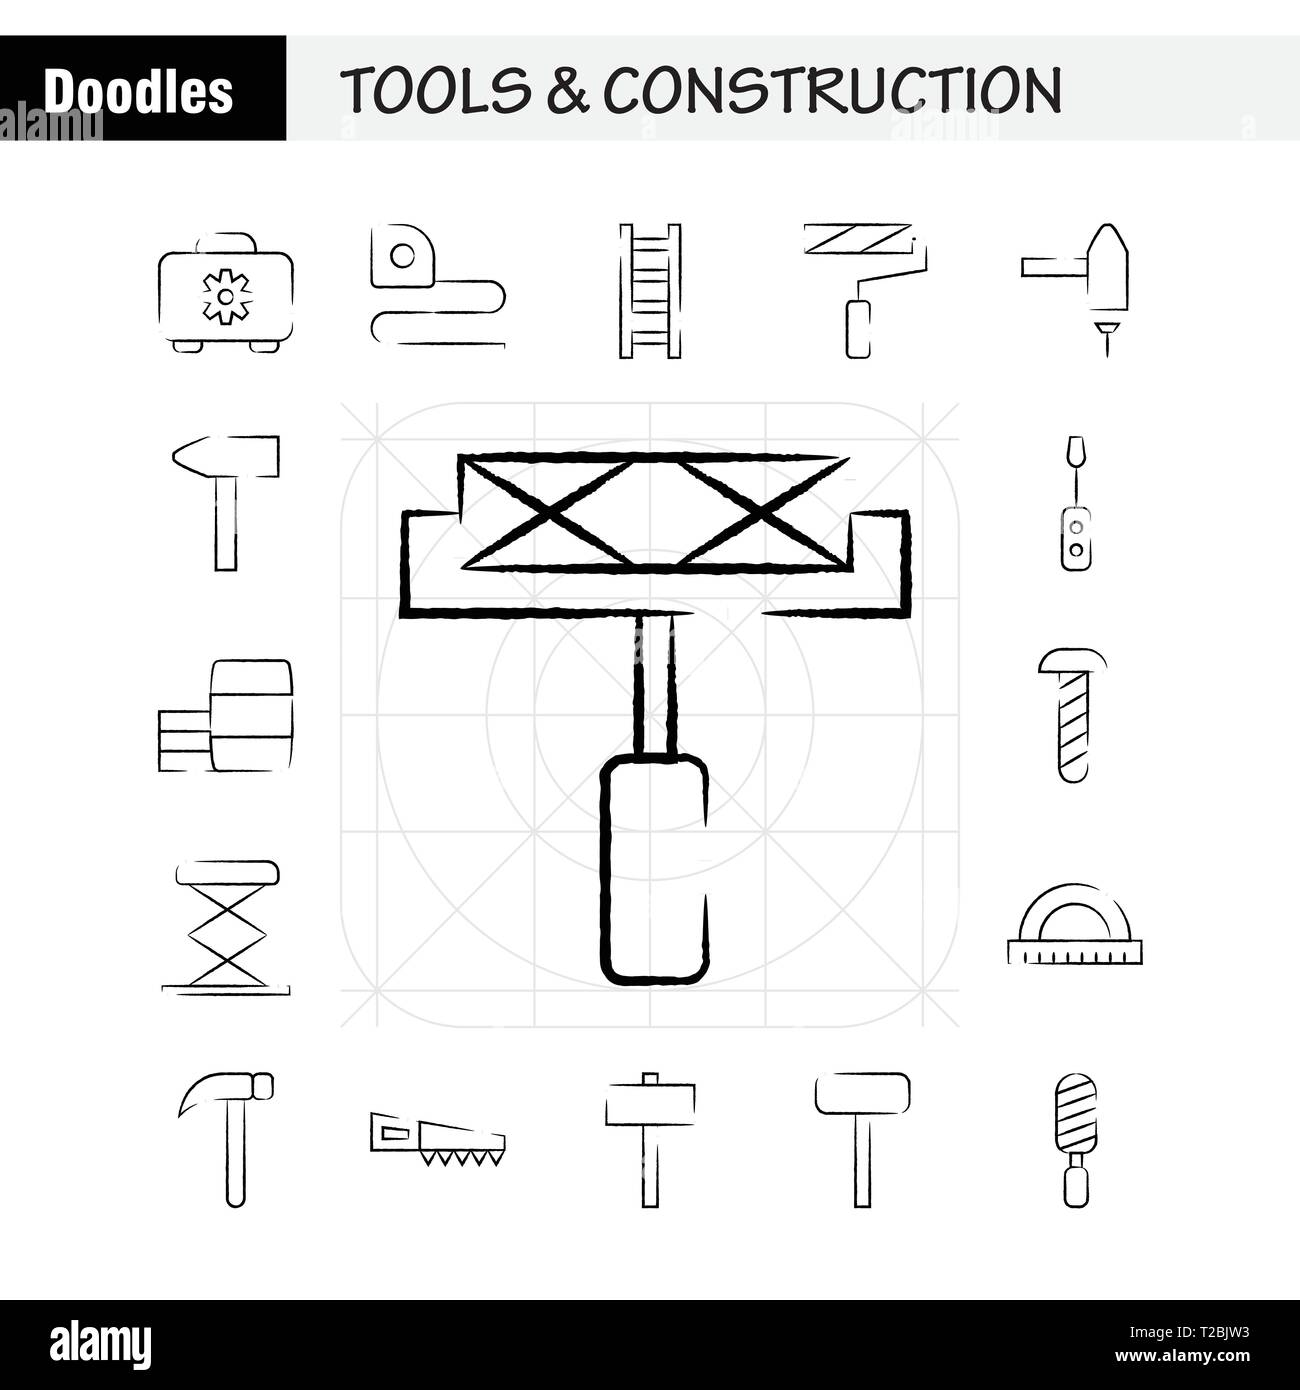 Tools And Construction Hand Drawn Icon Pack For Designers And Developers. Icons Of Box, Case, Cog, Construction, Construction, Measure, Tape, Tape Vec - Stock Image